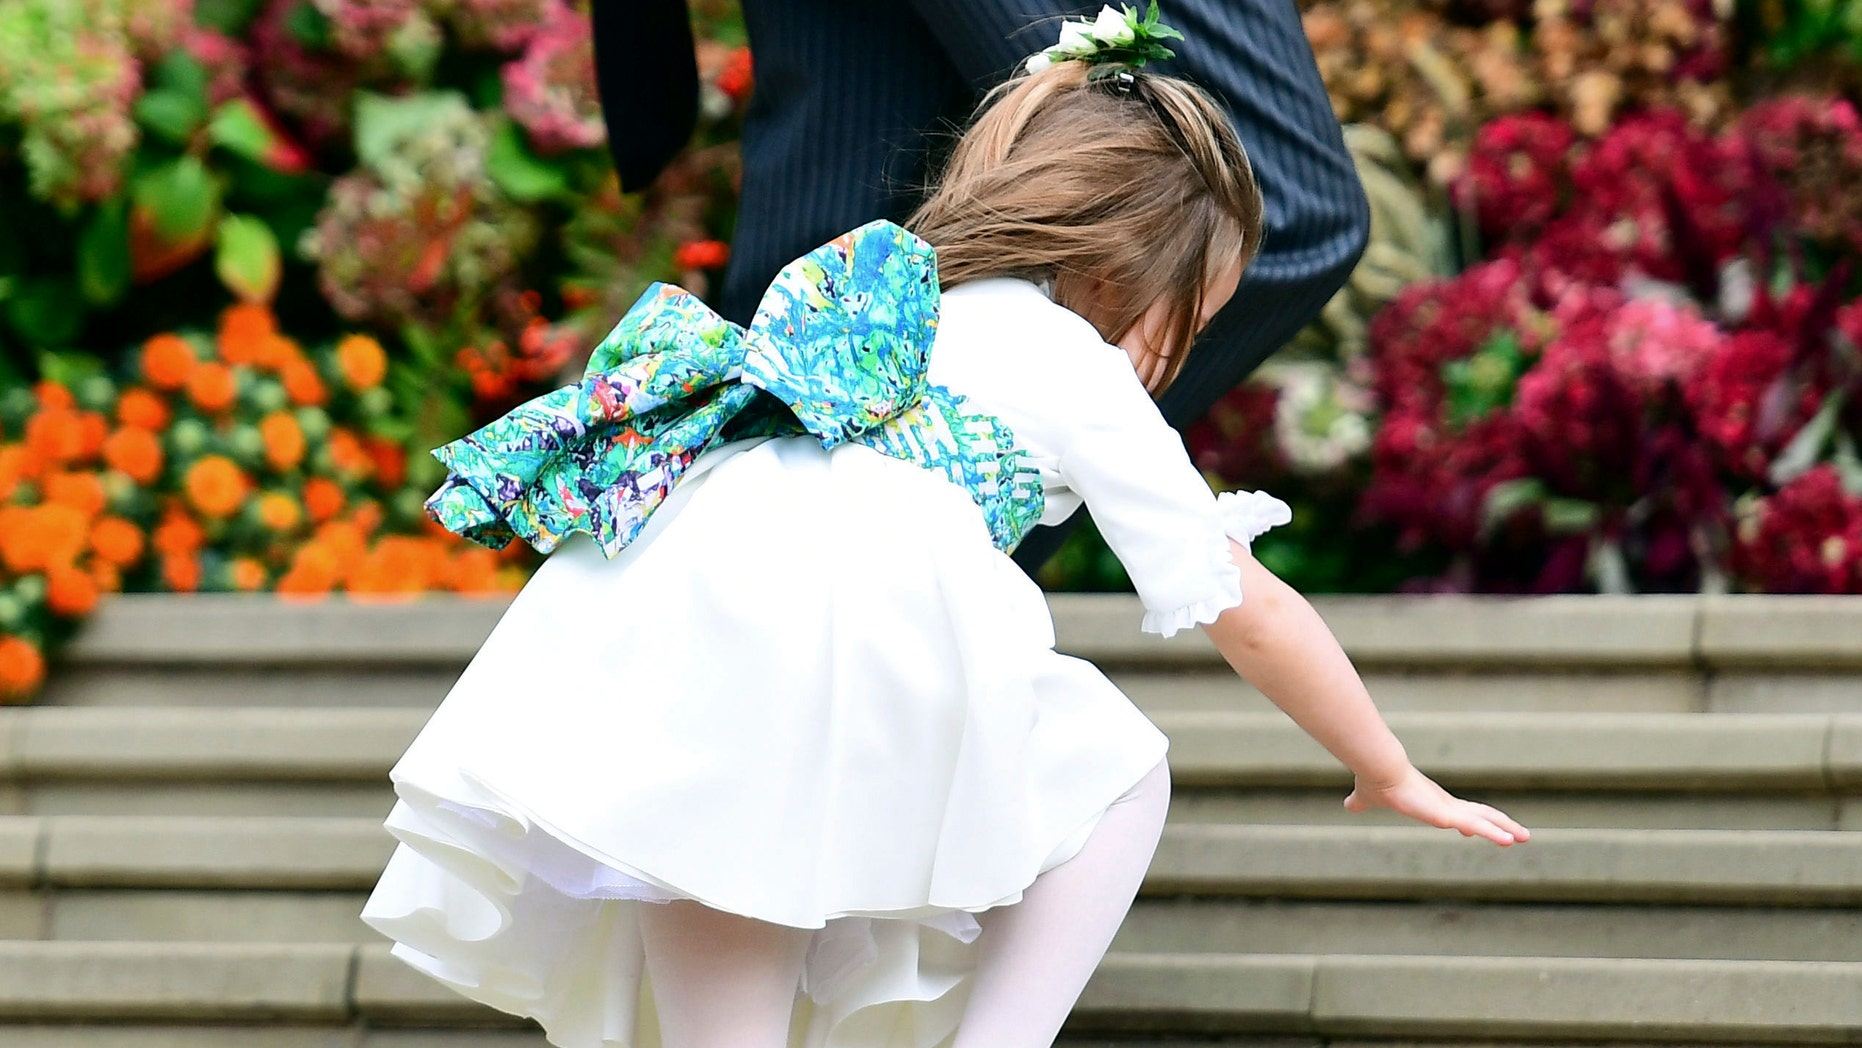 Britain's Princess Charlotte falls on the steps, as the bridesmaids and page boys arrive for the wedding of Princess Eugenie of York and Jack Brooksbank at St George's Chapel. (AP)